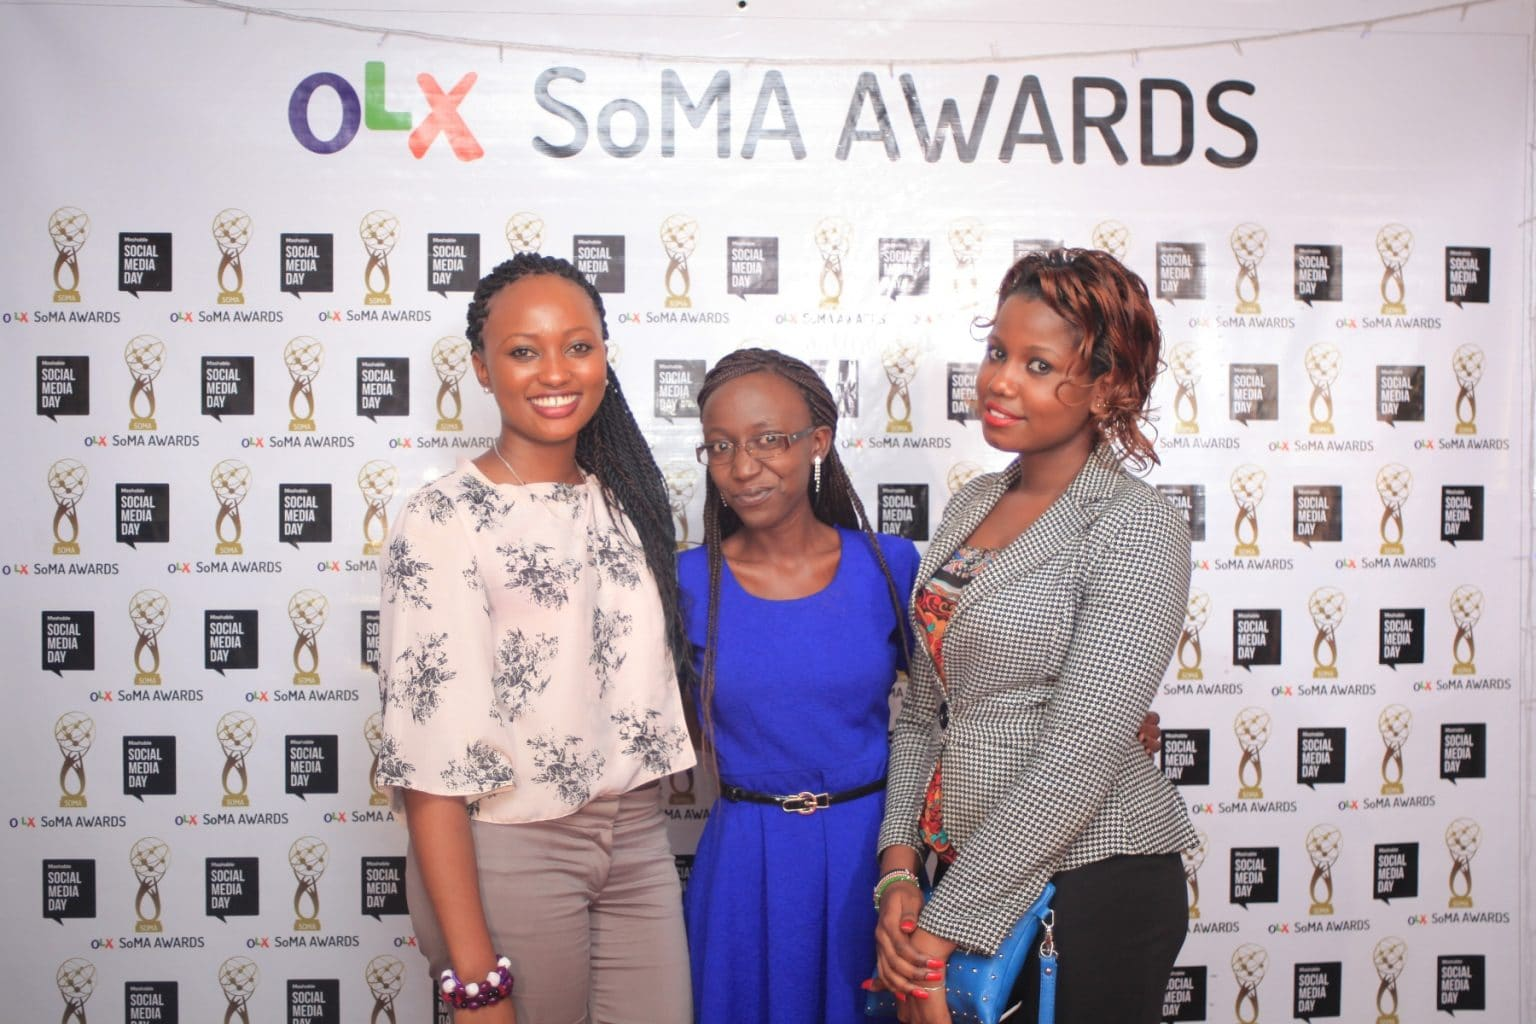 2017 OLX SOMA Awards Nominations now Open